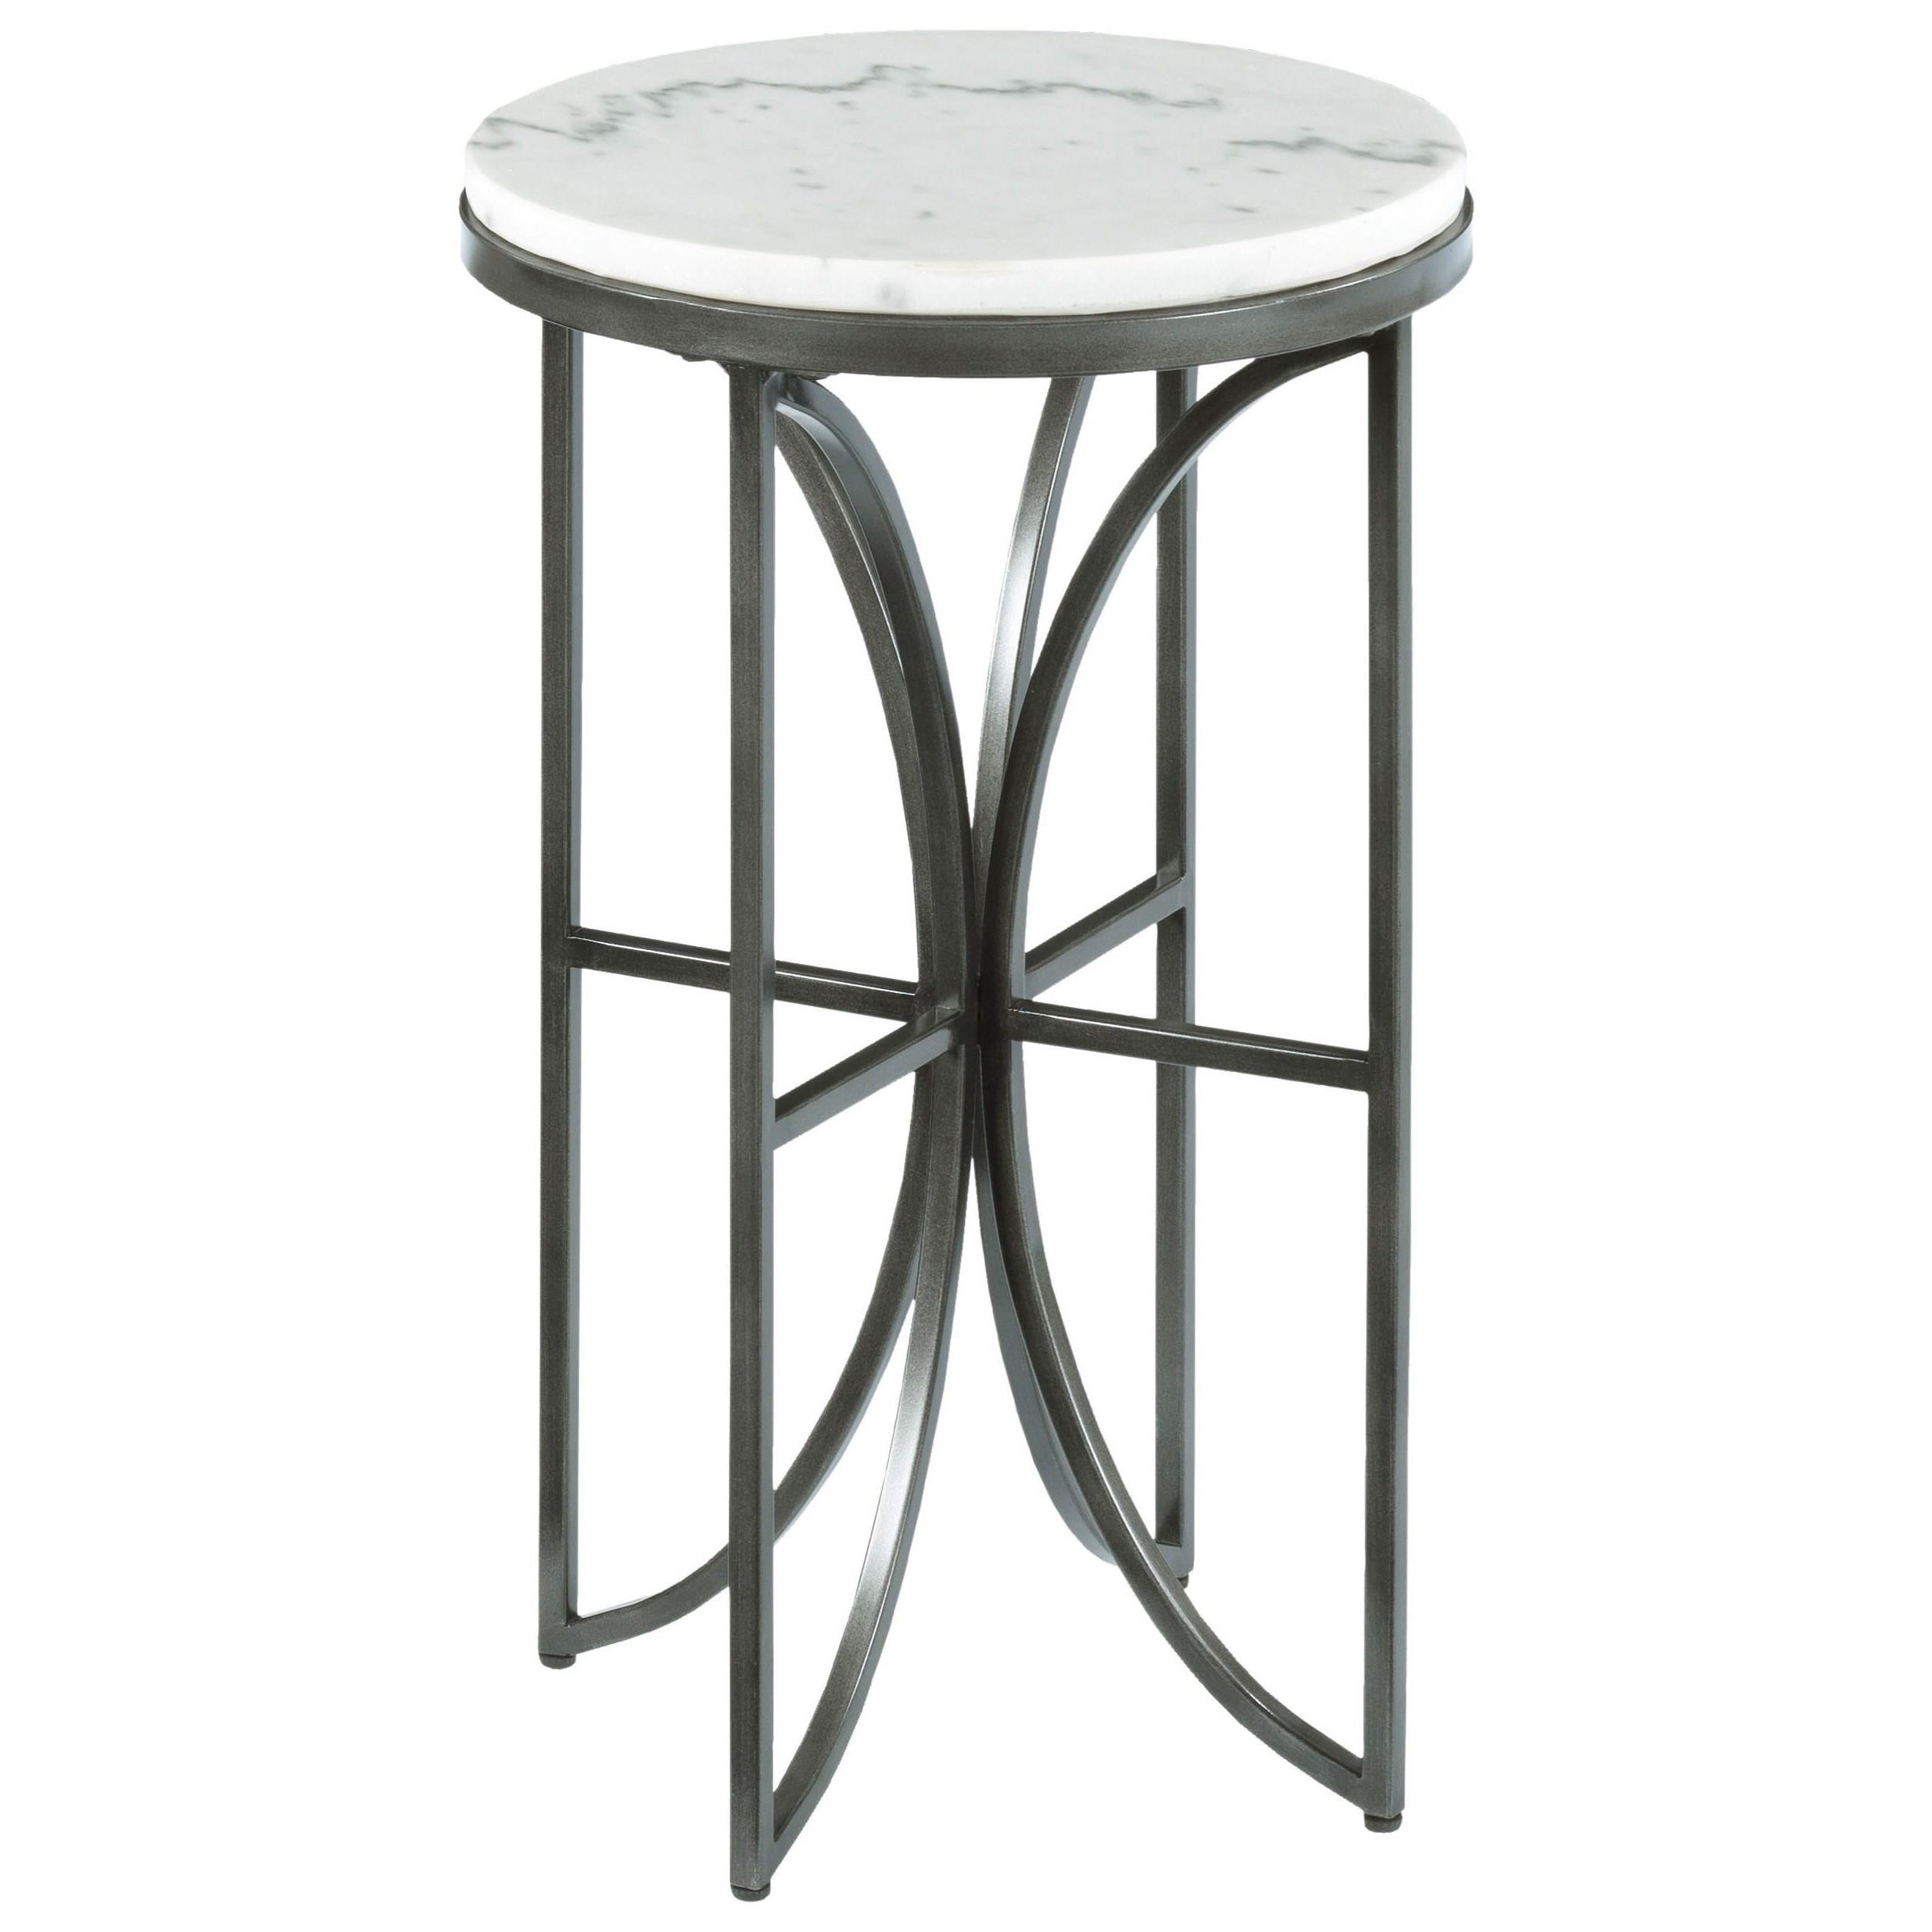 hammary impact small round accent table with marble top wayside products color tables furniture mersman antique occasional pink runner gear wall clock vita lampen unique light